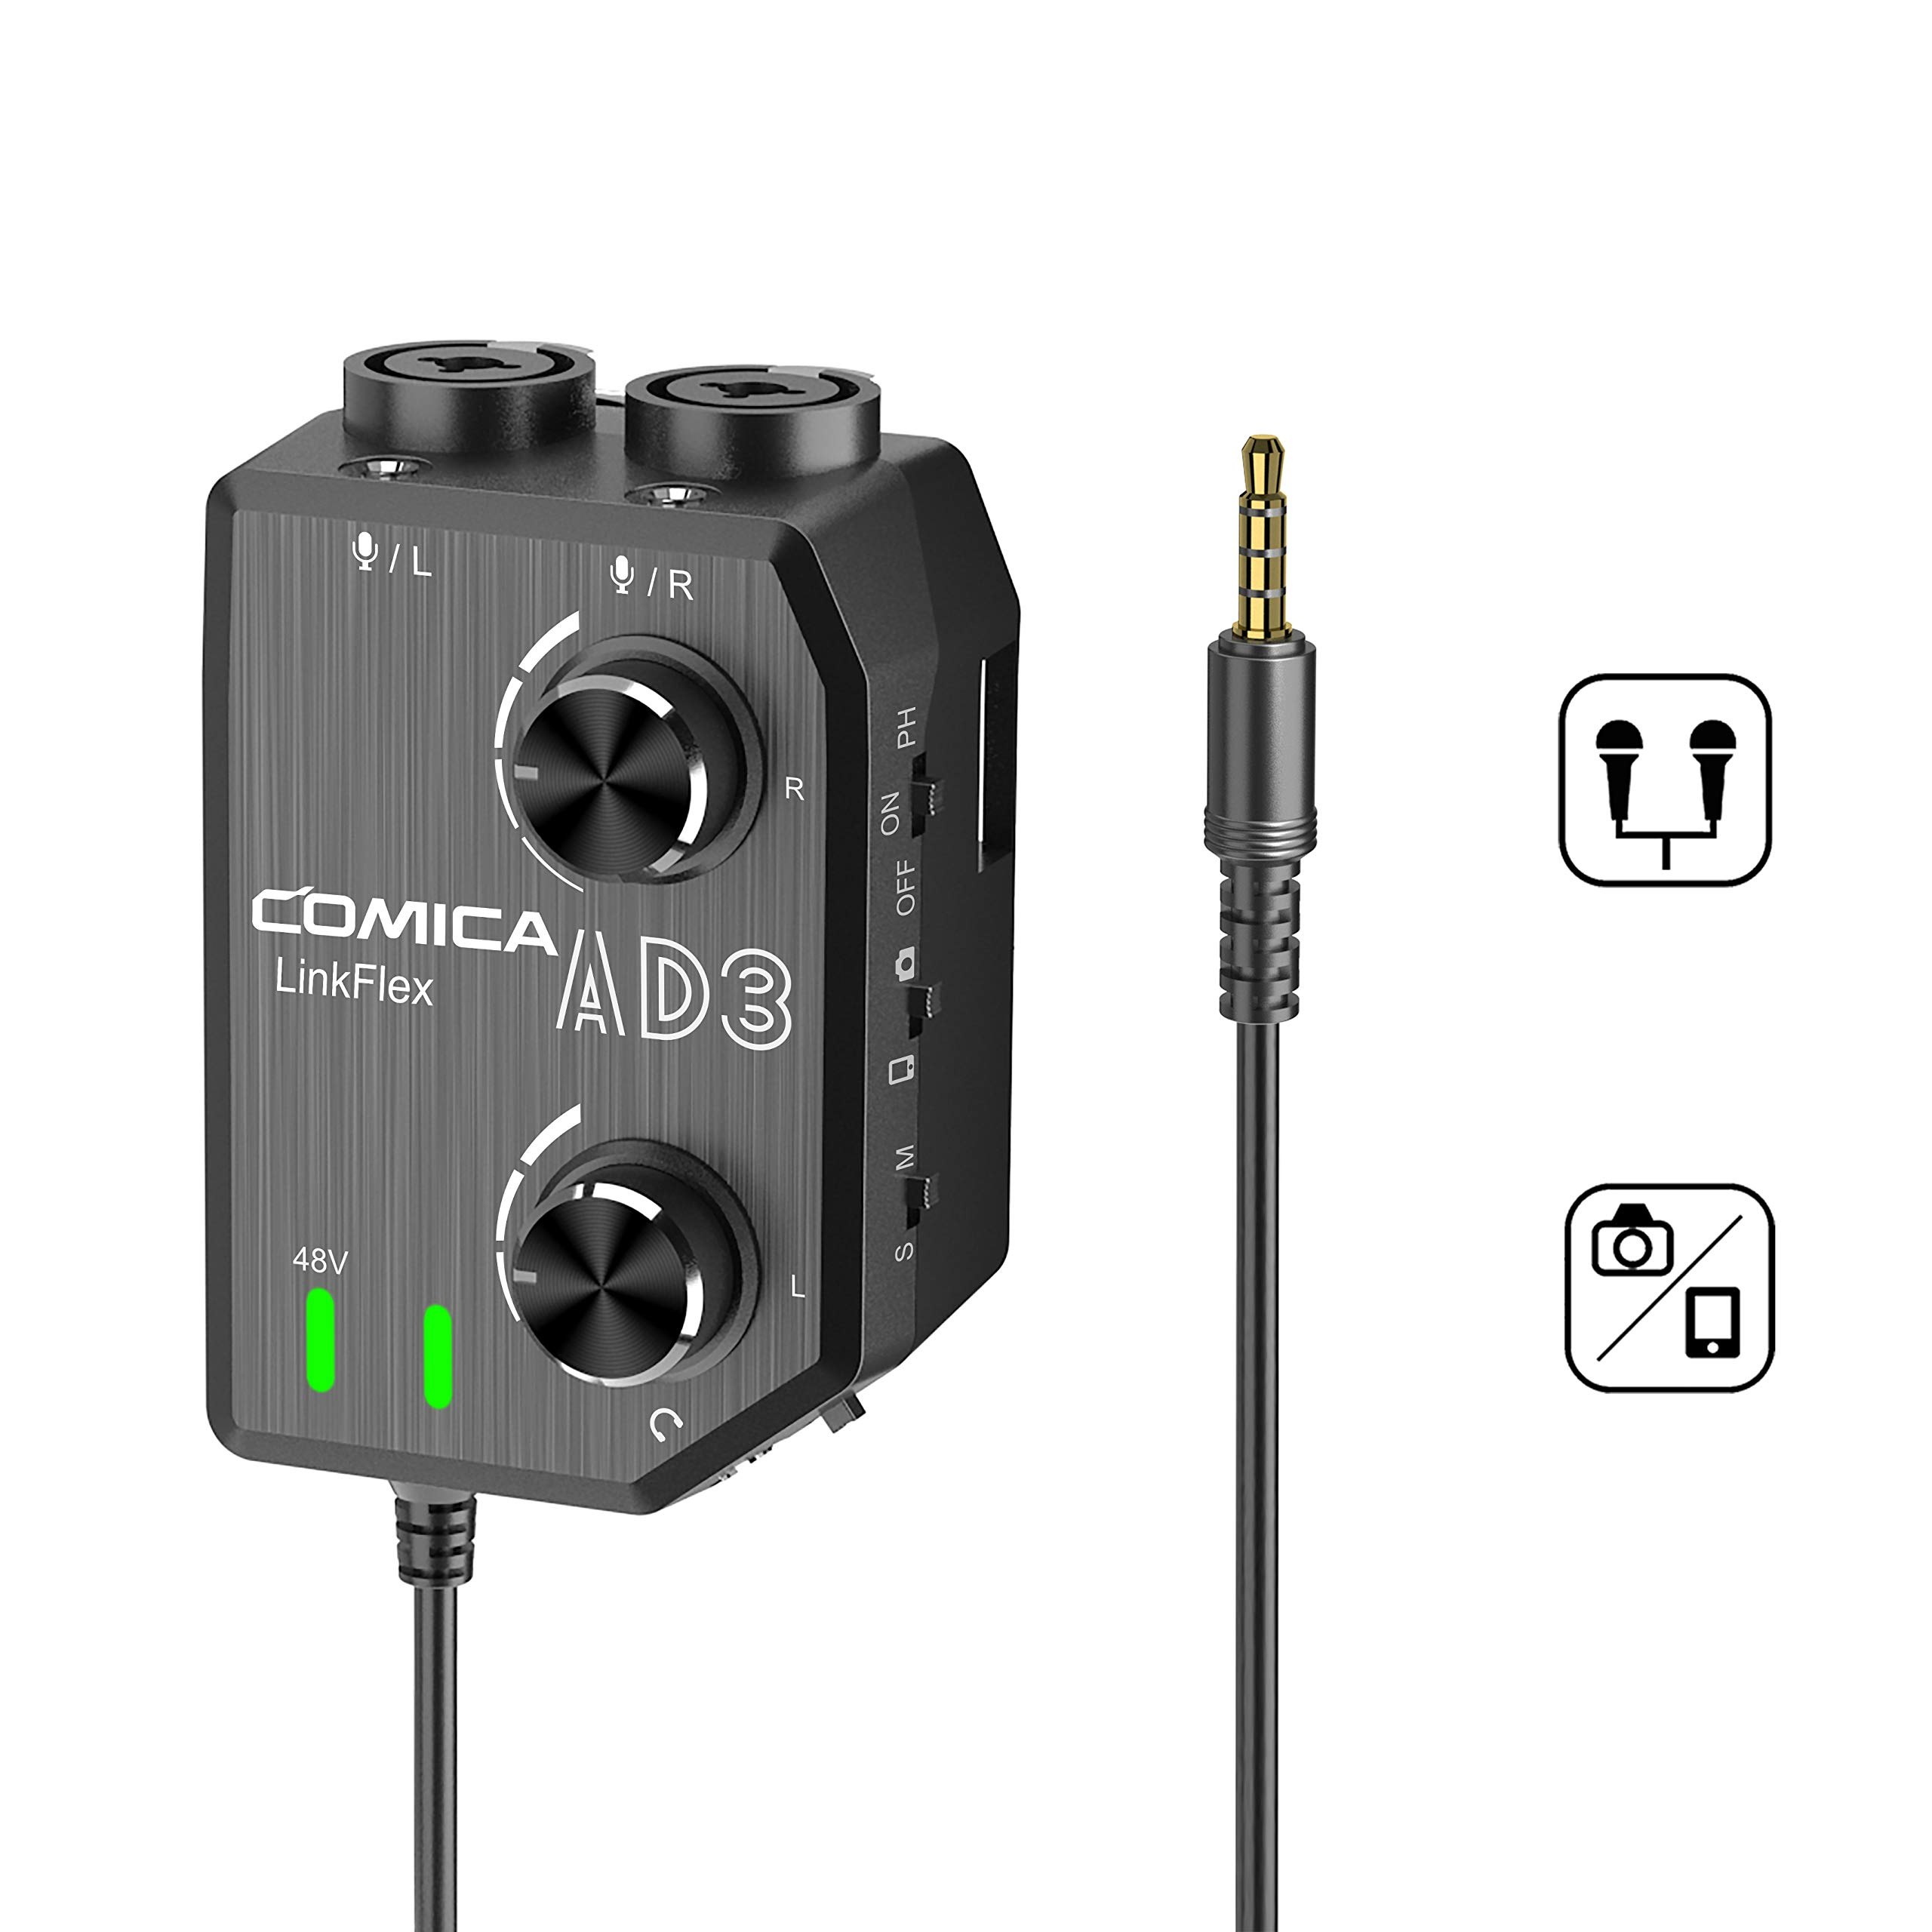 Comica CVM-LINKFLEX.AD3 Audio Preamp/Mixer Two-channels XLR/3.5mm/6.35mm-3.5mm, 48V Phantom Power & Real Time Monitor, Universal Canon Nikon Sony DSLR Cameras &Smartphone by comica